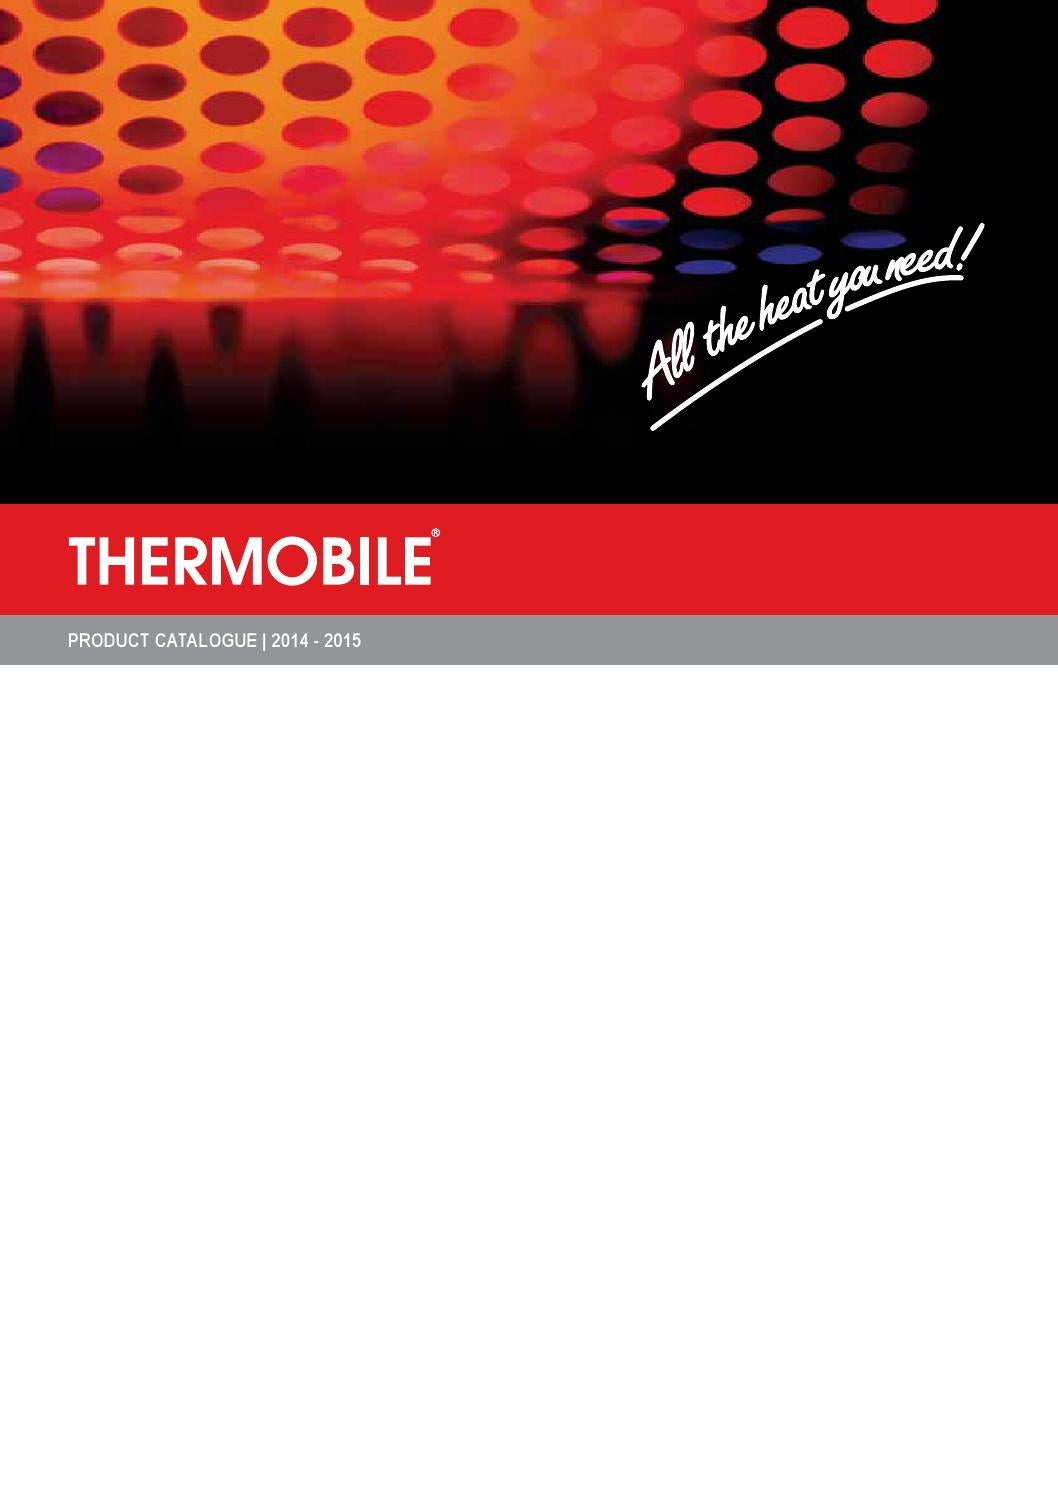 page_1 thermobile catalogue by uk construction media limited issuu thermobile at307 wiring diagram at cos-gaming.co